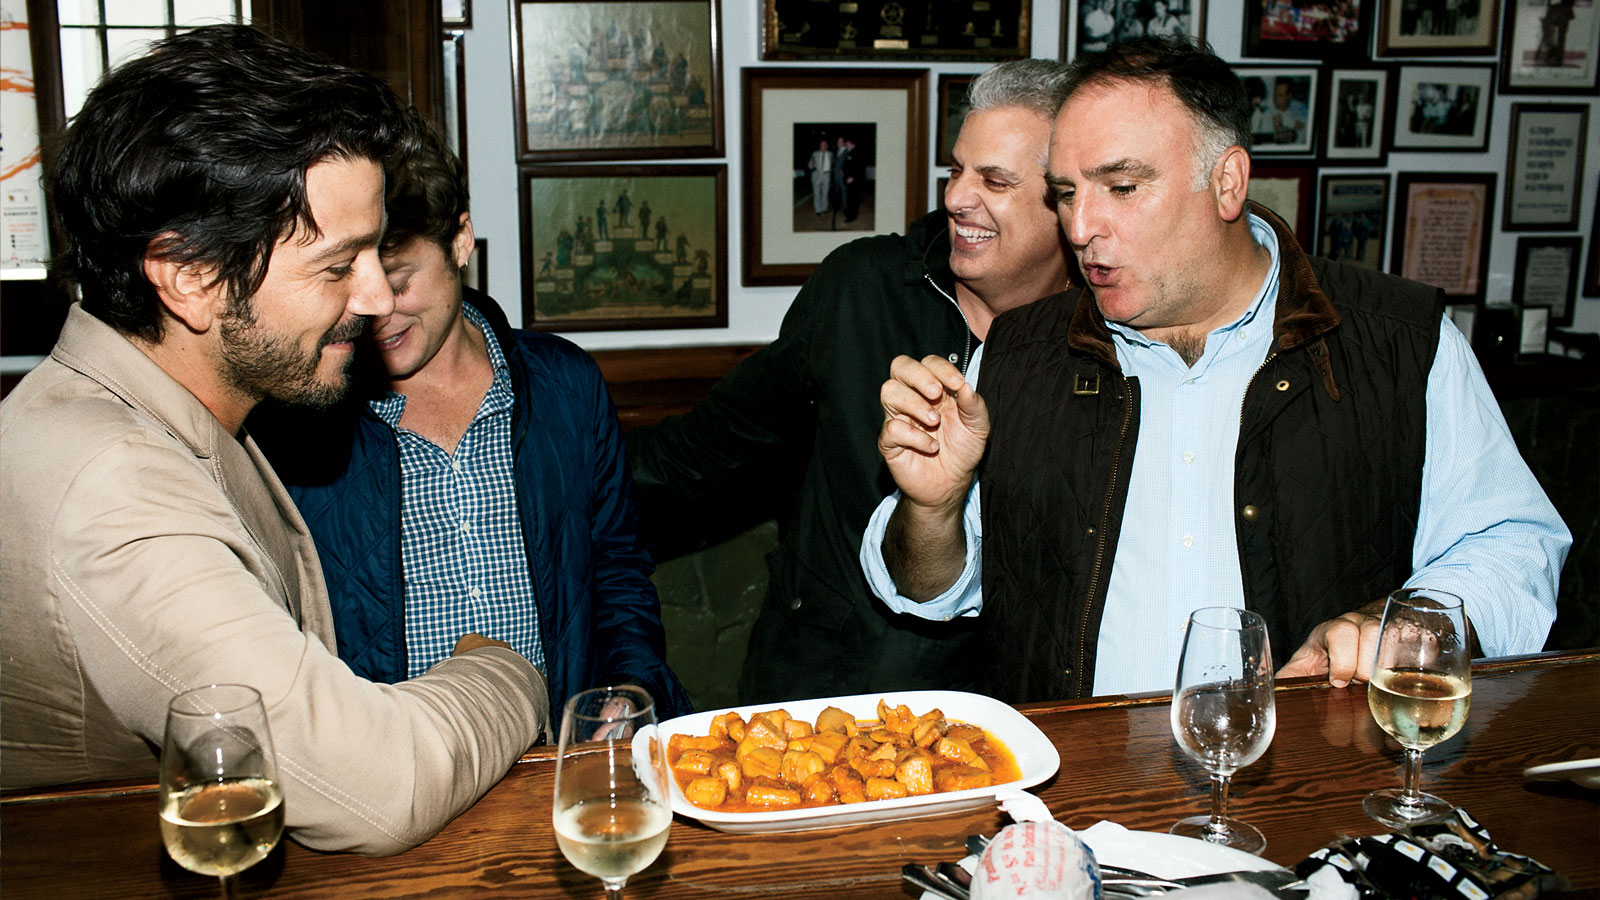 Road Trip Through Southern Spain with José Andrés, Eric Ripert and Diego Luna